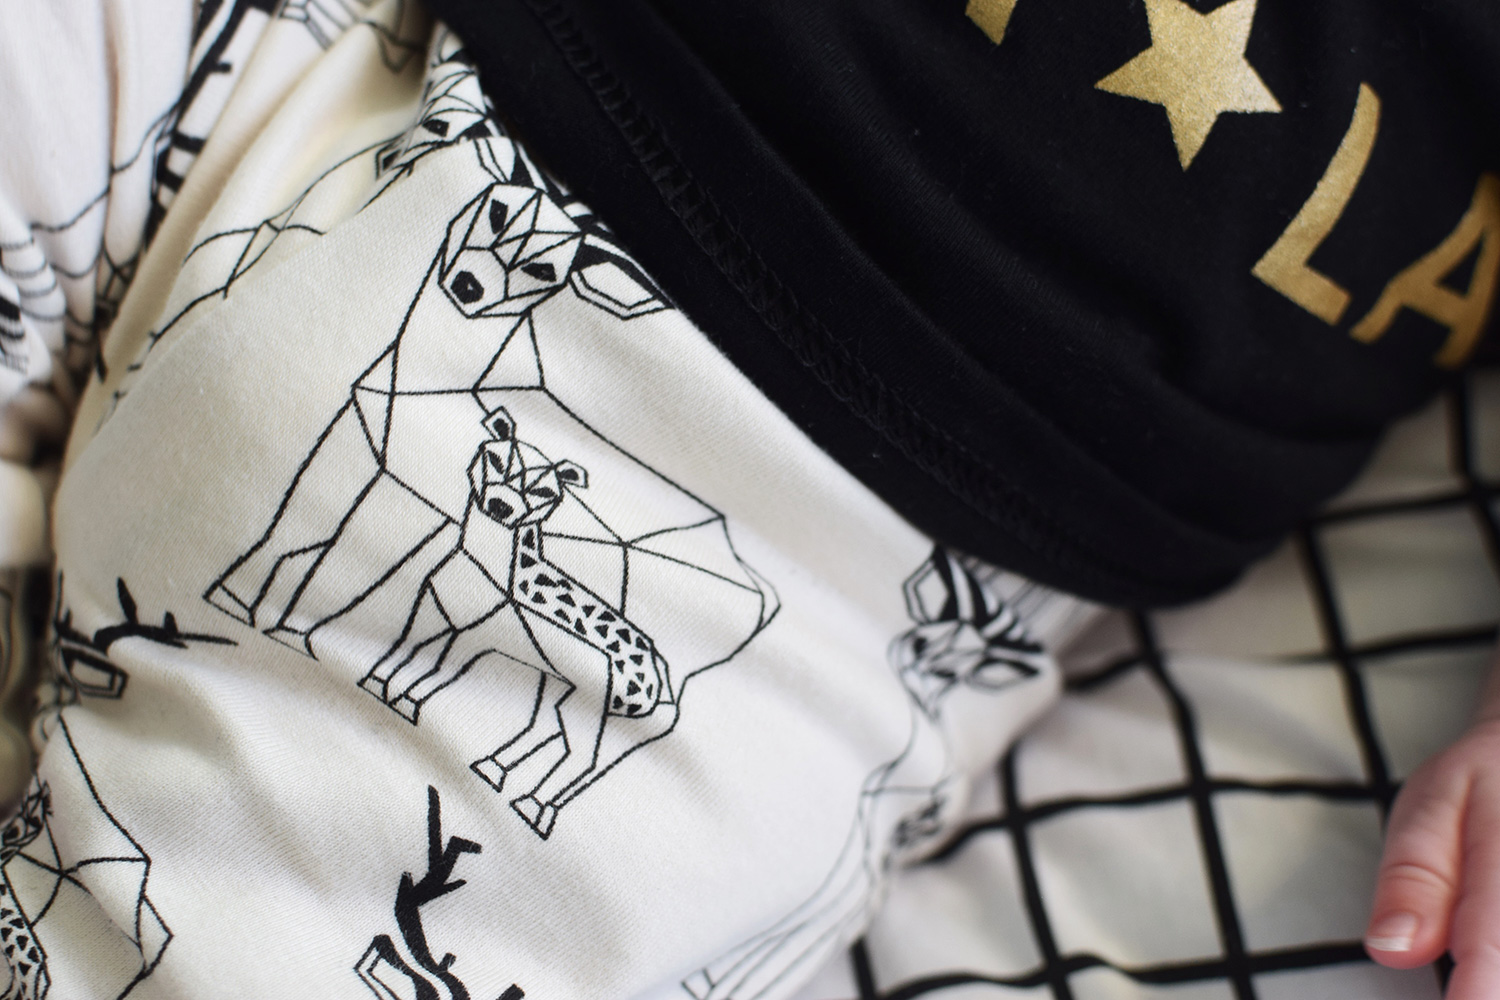 It's Christmassss with Tobias & the Bear {Fashion Friday 046} - Adorable 4 month old baby boy wearing 'Fa la la la la' Tobias & the Bear black and gold t-shirt, stag cream geometric leggings and H&M black bobble hat on grid duvet from Primark with white rabbit noodoll